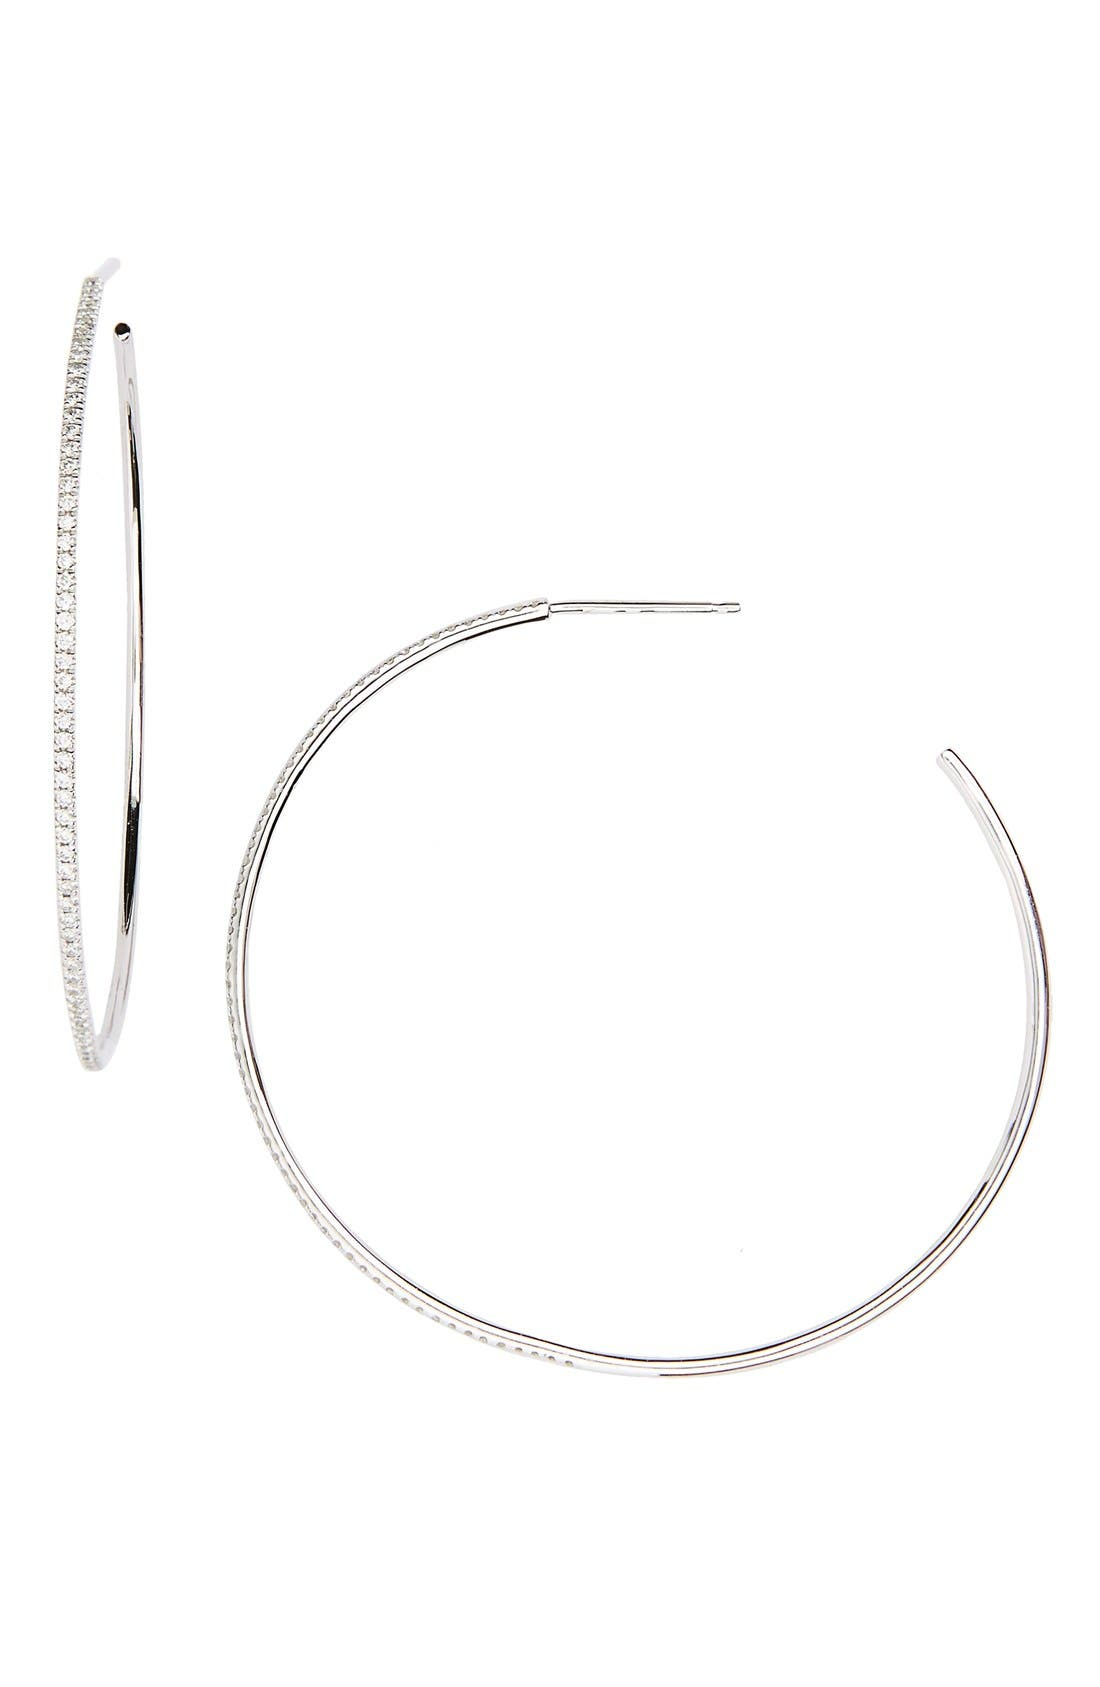 Alternate Image 1 Selected - Bony Levy Skinny Diamond Hoop Earrings (Nordstrom Exclusive)